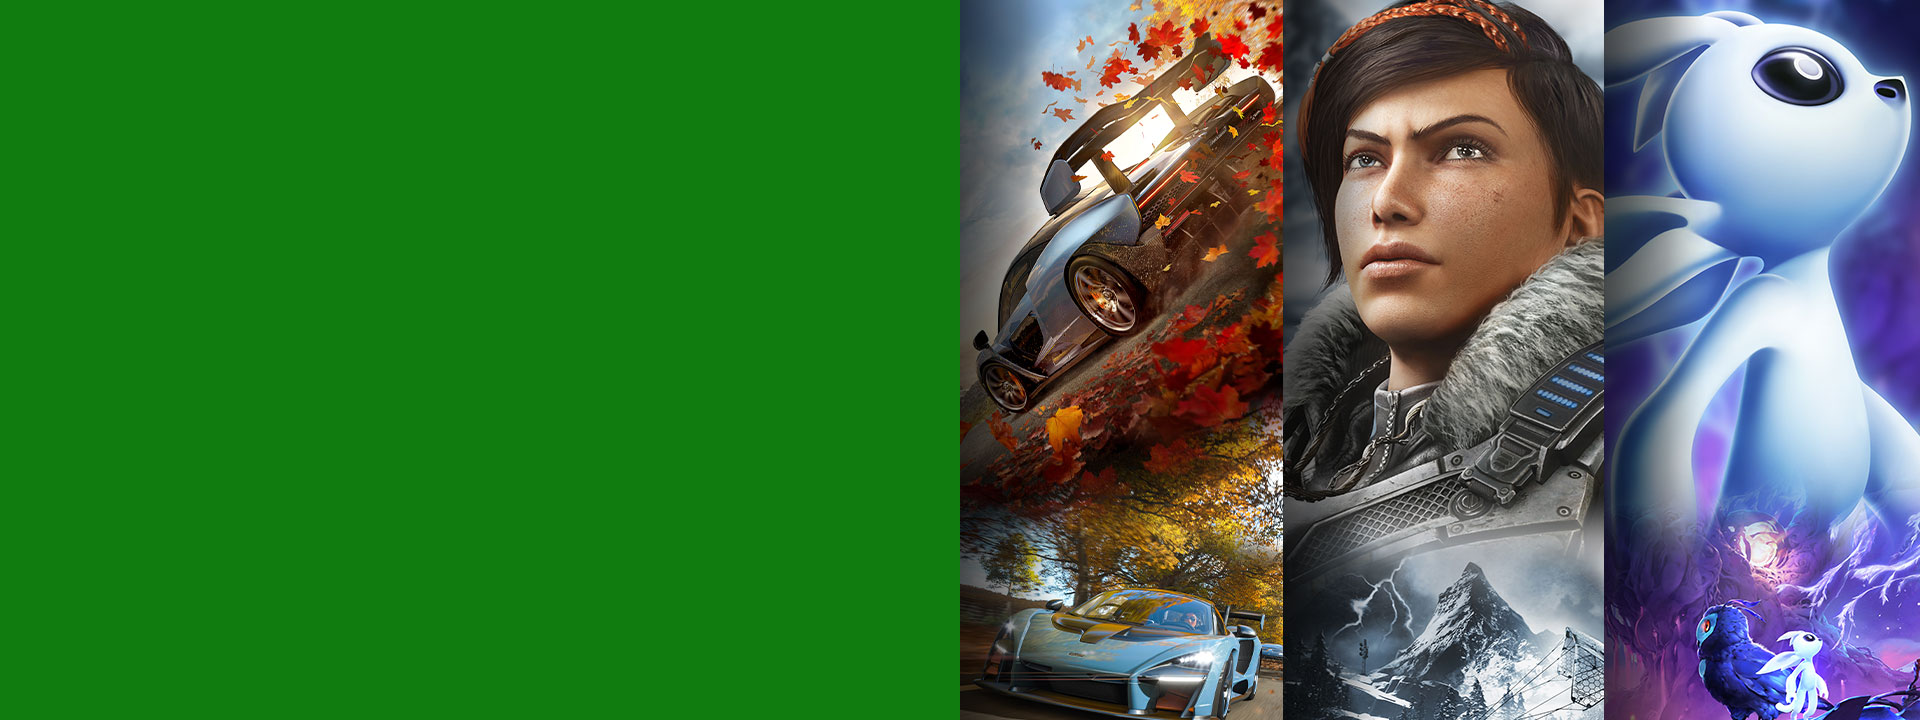 Imagen de múltiples juegos disponibles con Xbox Game Pass, incluidos Forza Horizon 4, Gears 5 y Ori and the Will of the Wisps.